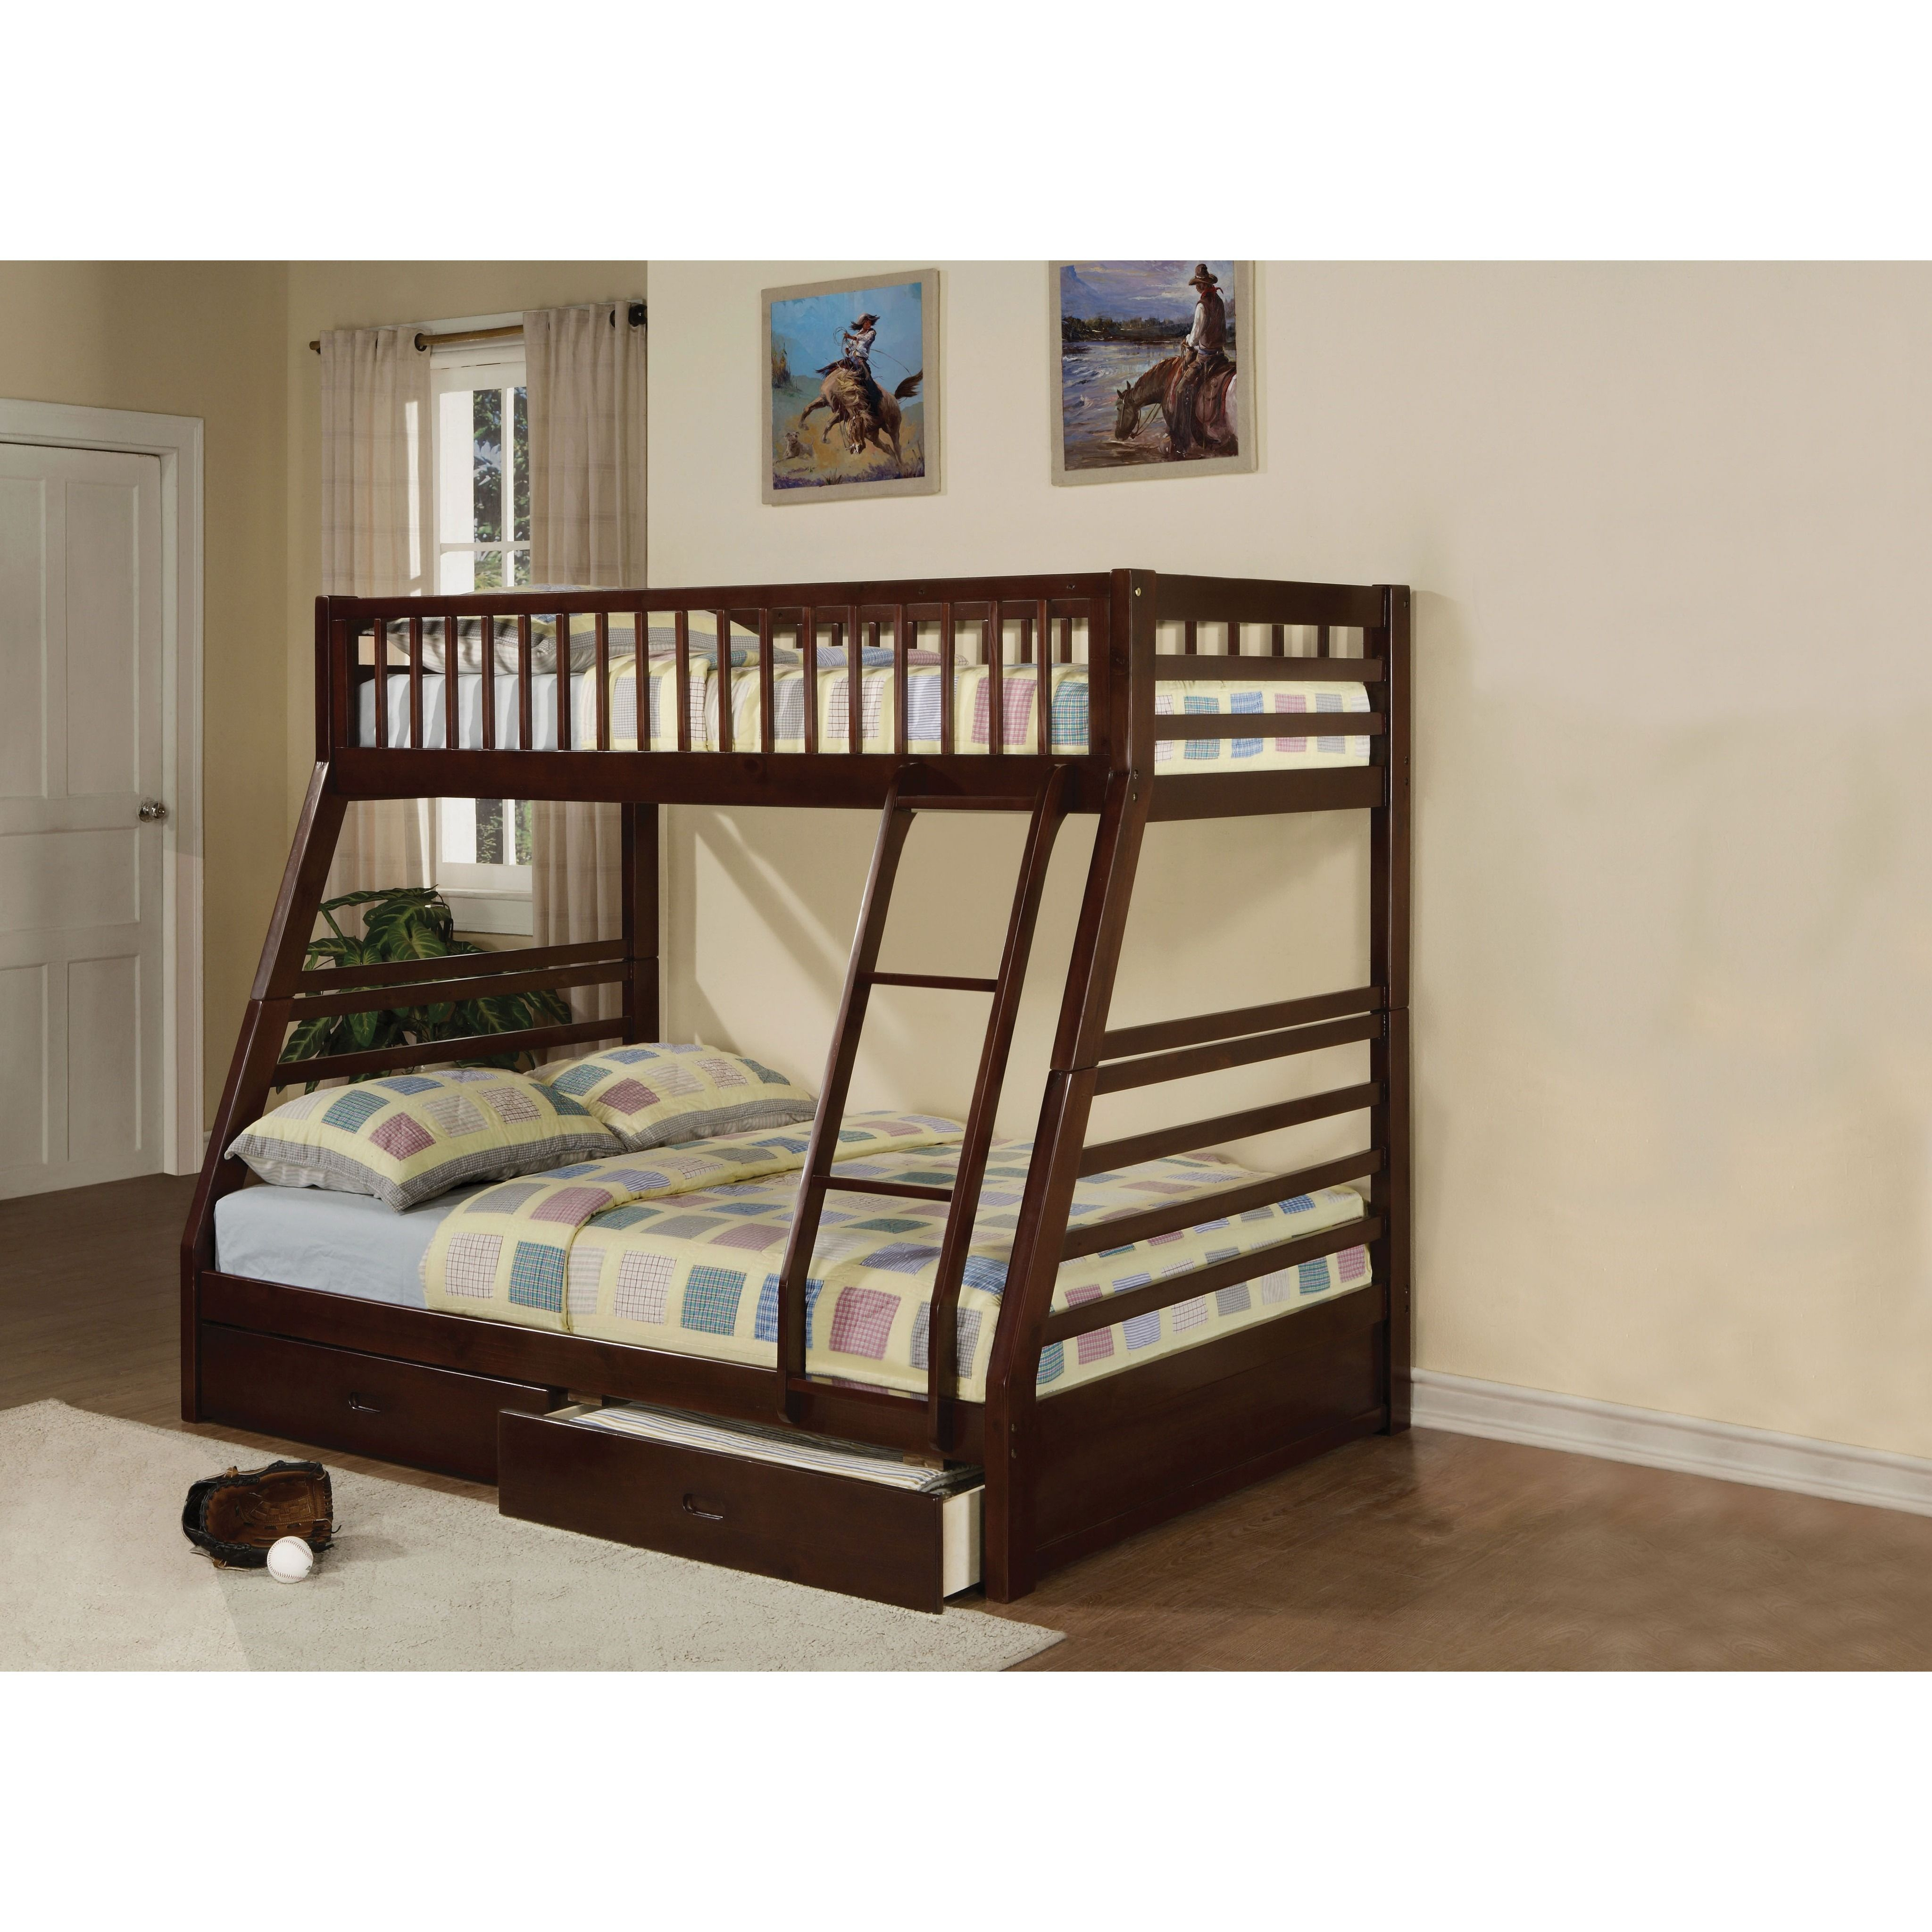 Twin over full loft bed with stairs  Jason Espresso Pine Wood Twin over Full Bunk Bed with Drawers  Full